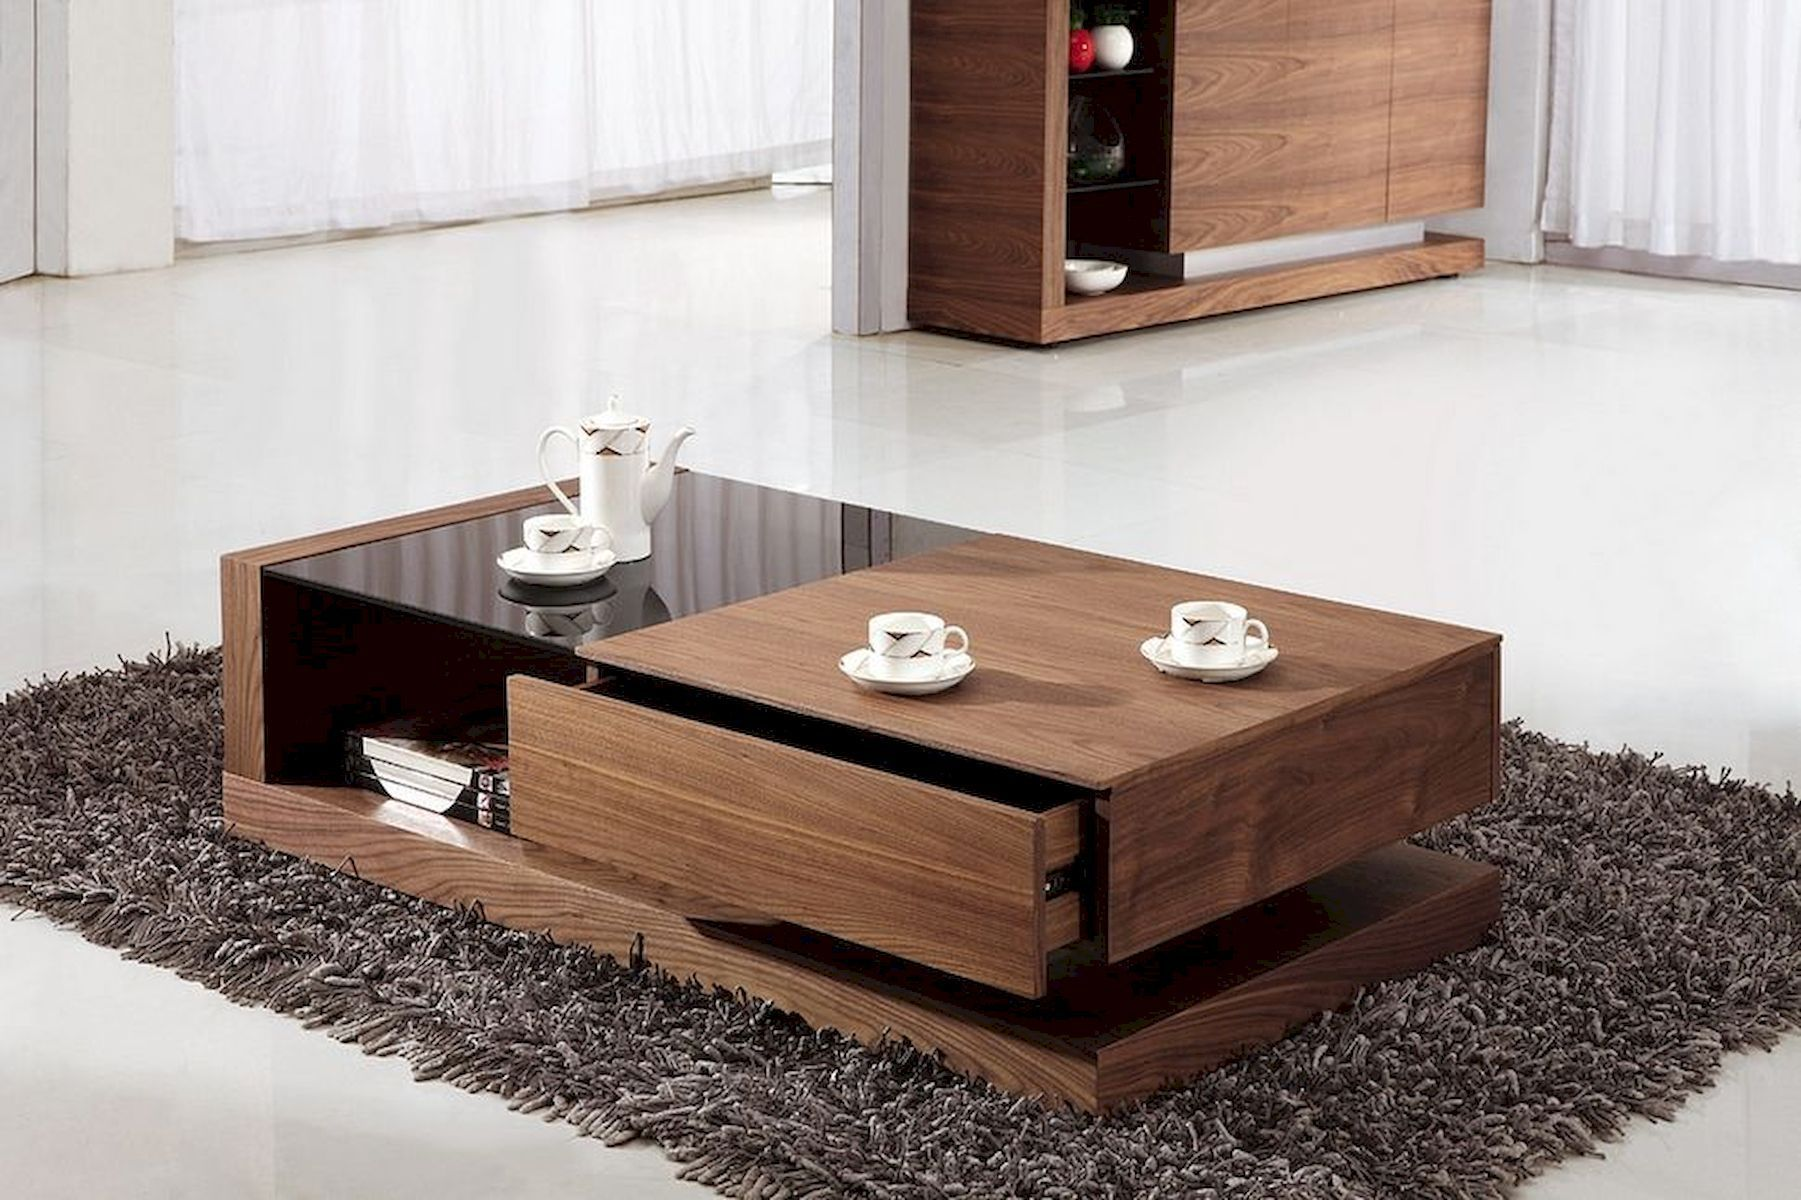 Adorable coffee table designs ideas 40